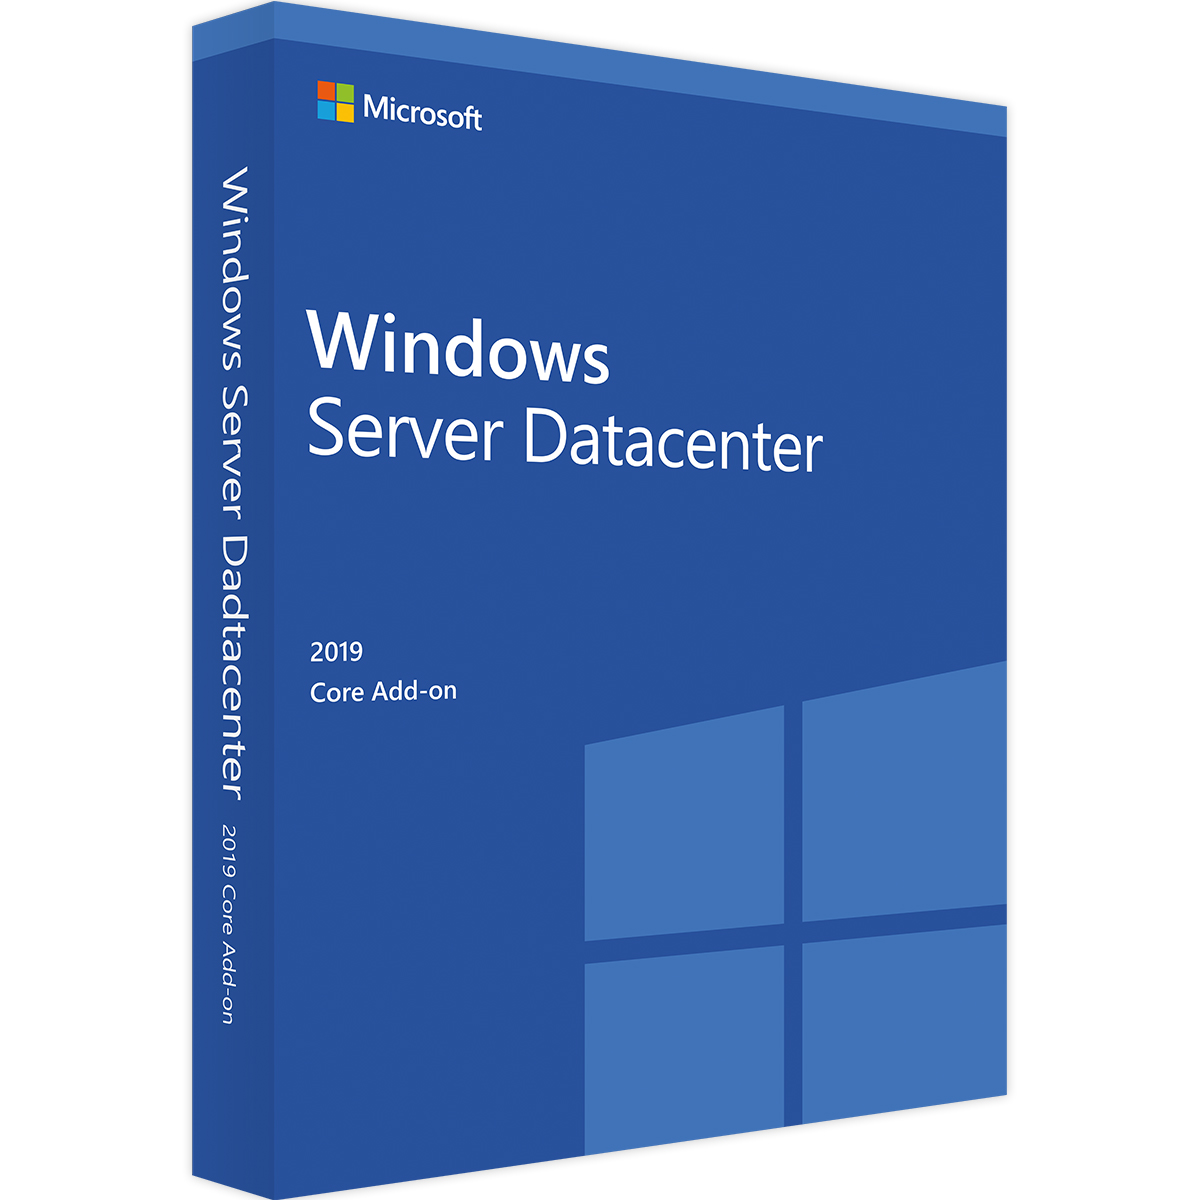 Microsoft Windows Server Datacenter 2019 64Bit 16 Core DVD SB/OEM, Deutsch (P71-09025)